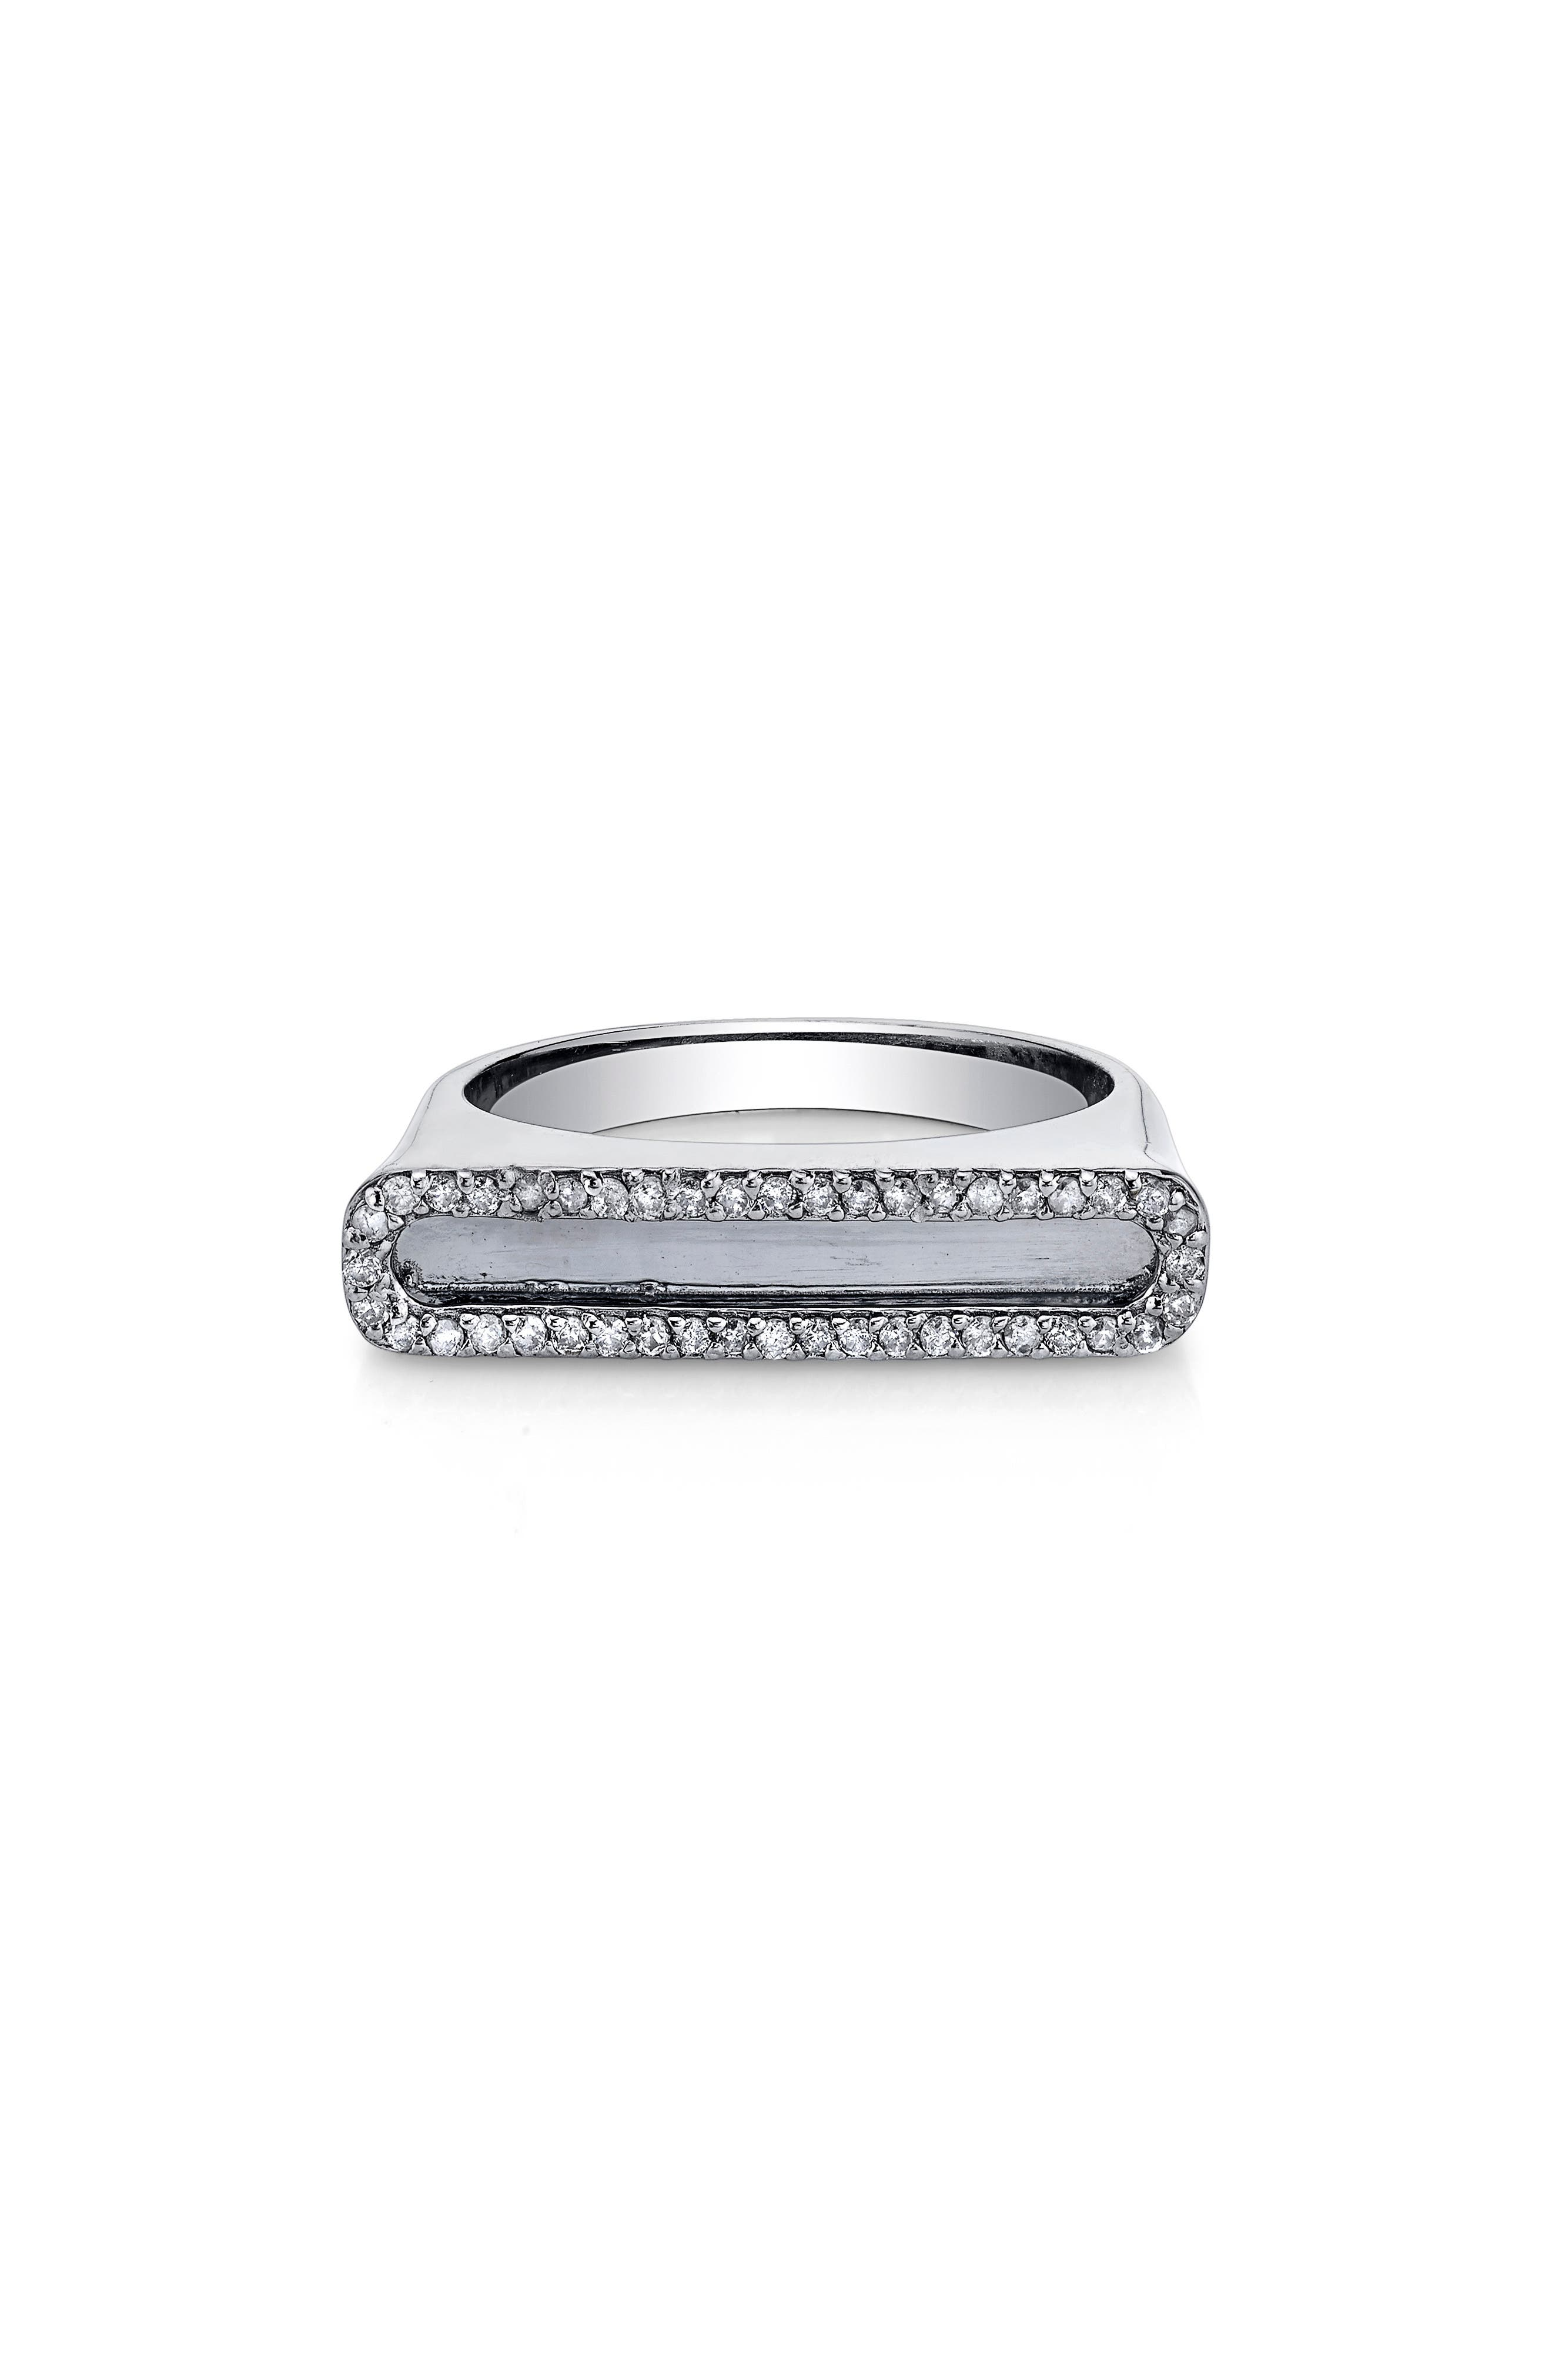 Pave Diamond Frame Bar Ring in Sterling Silver